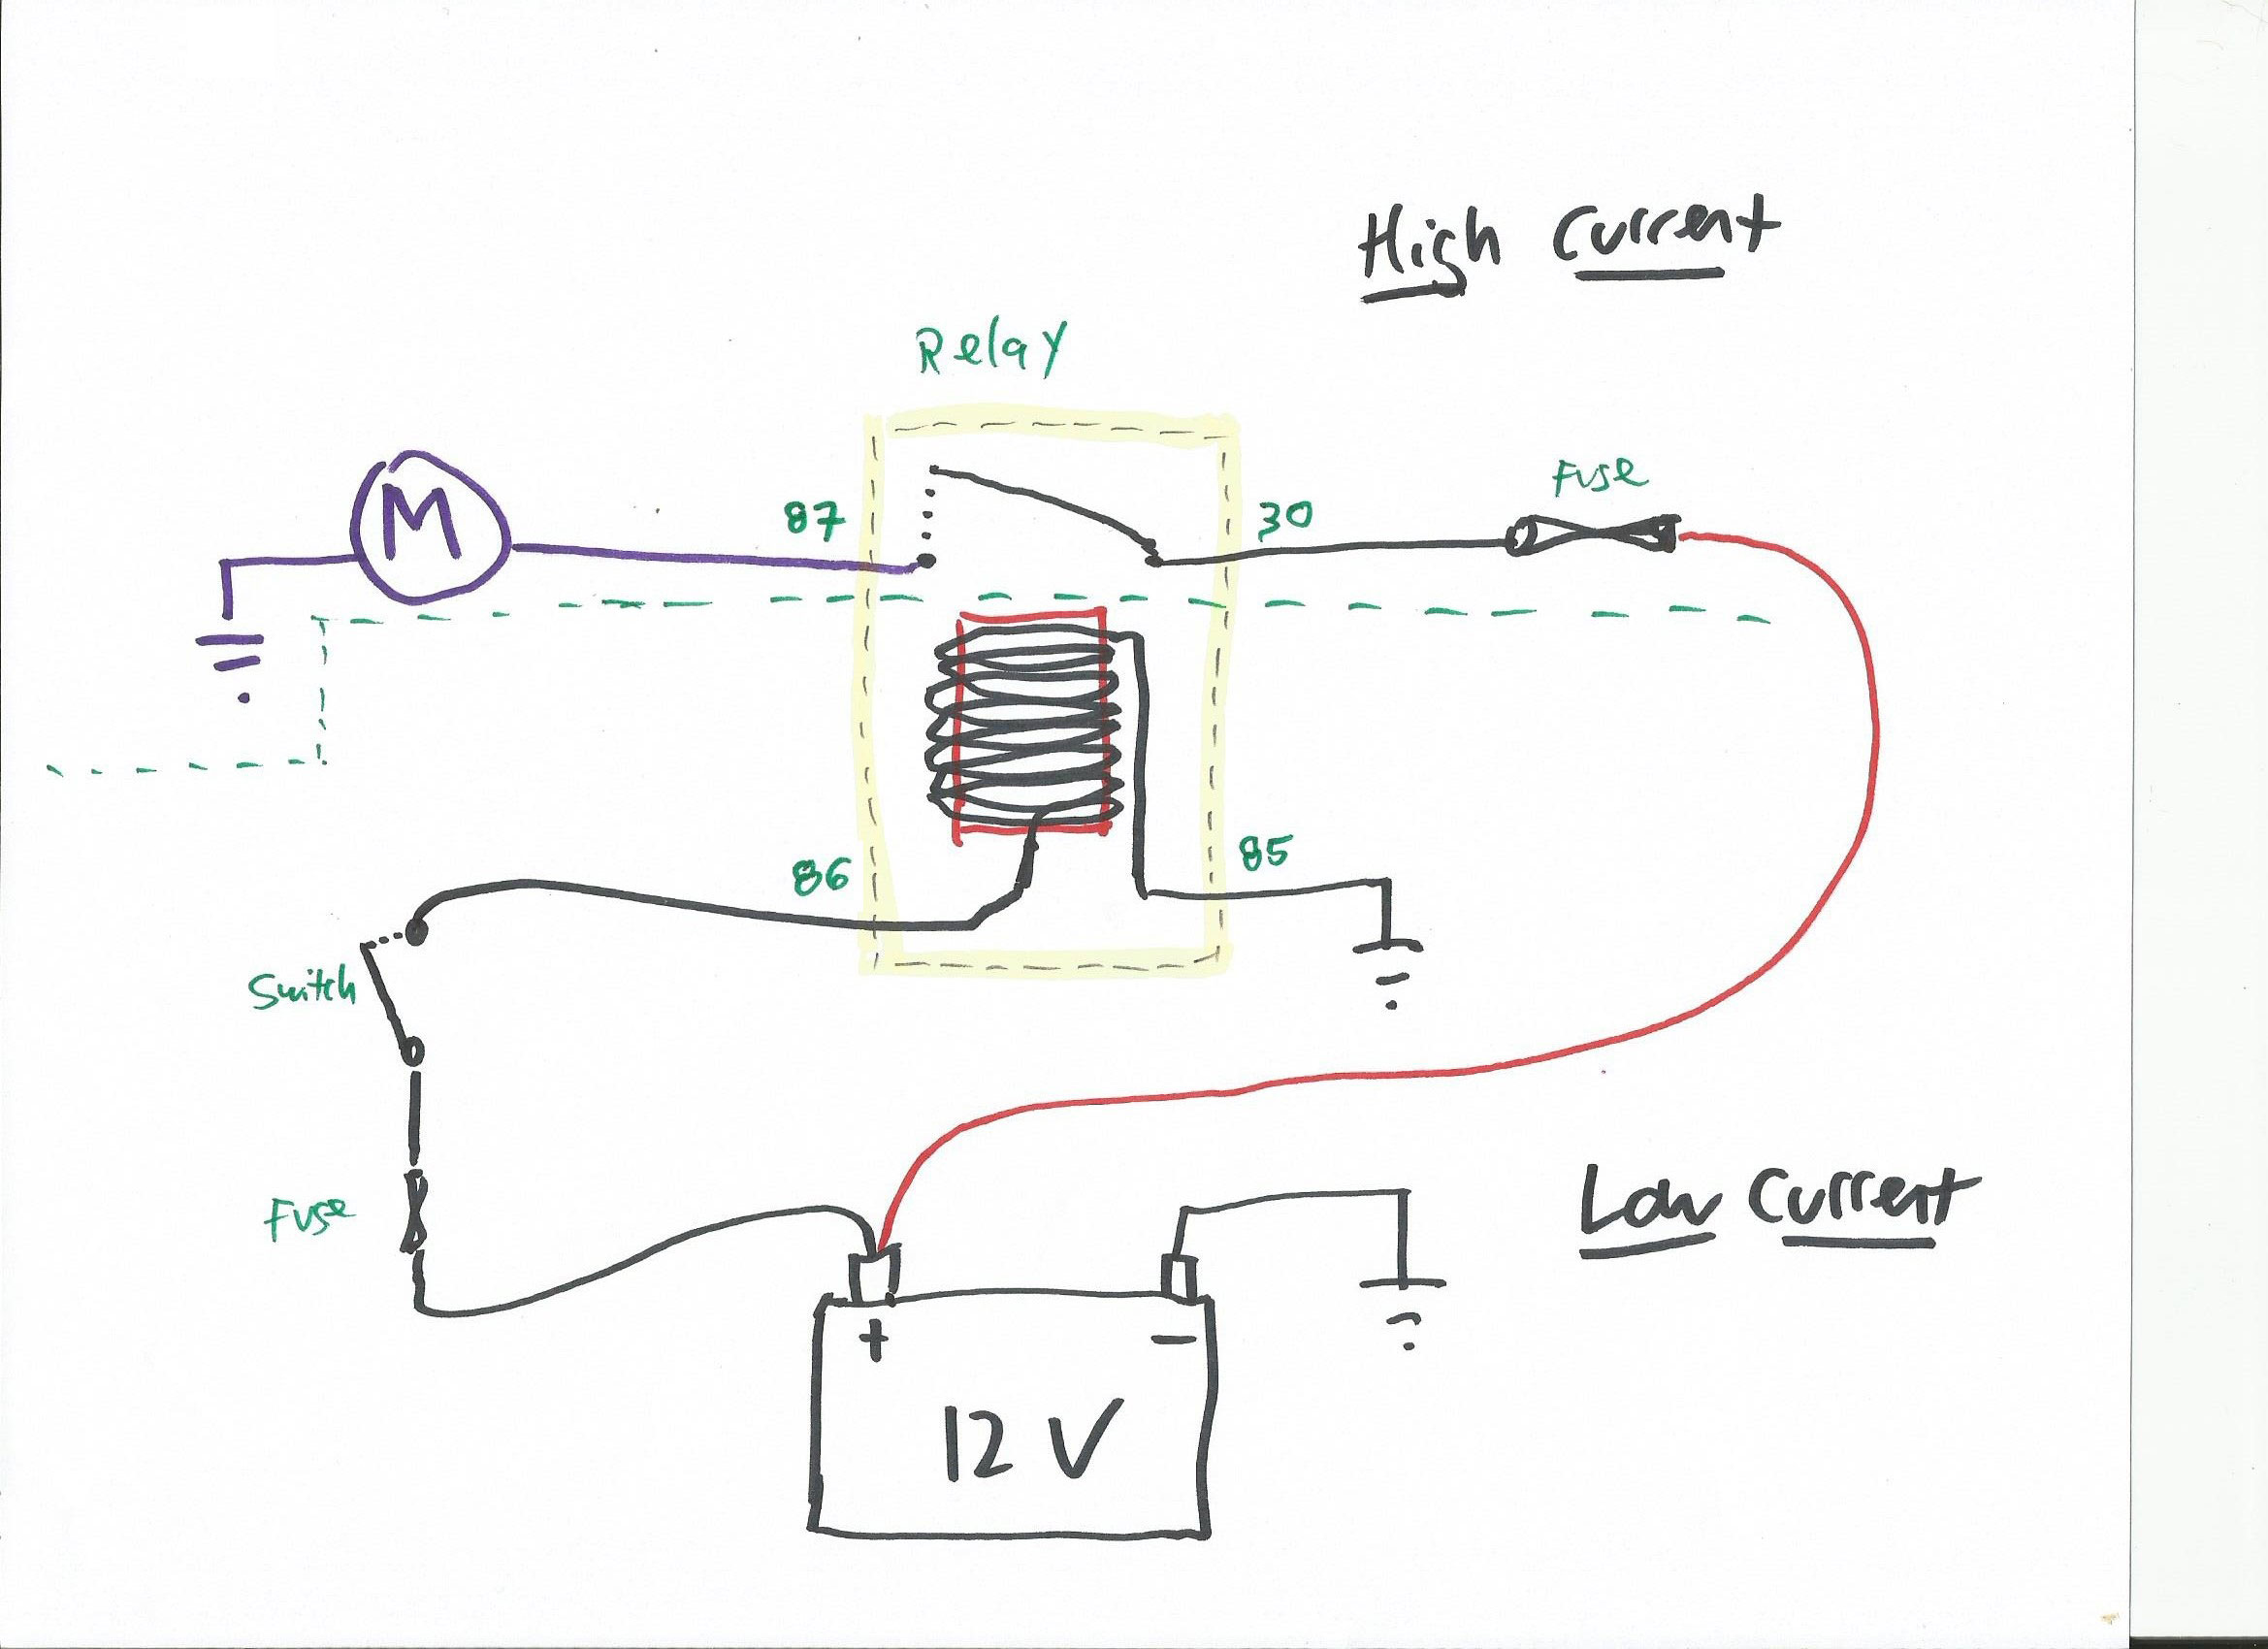 Relay in realistic circuit